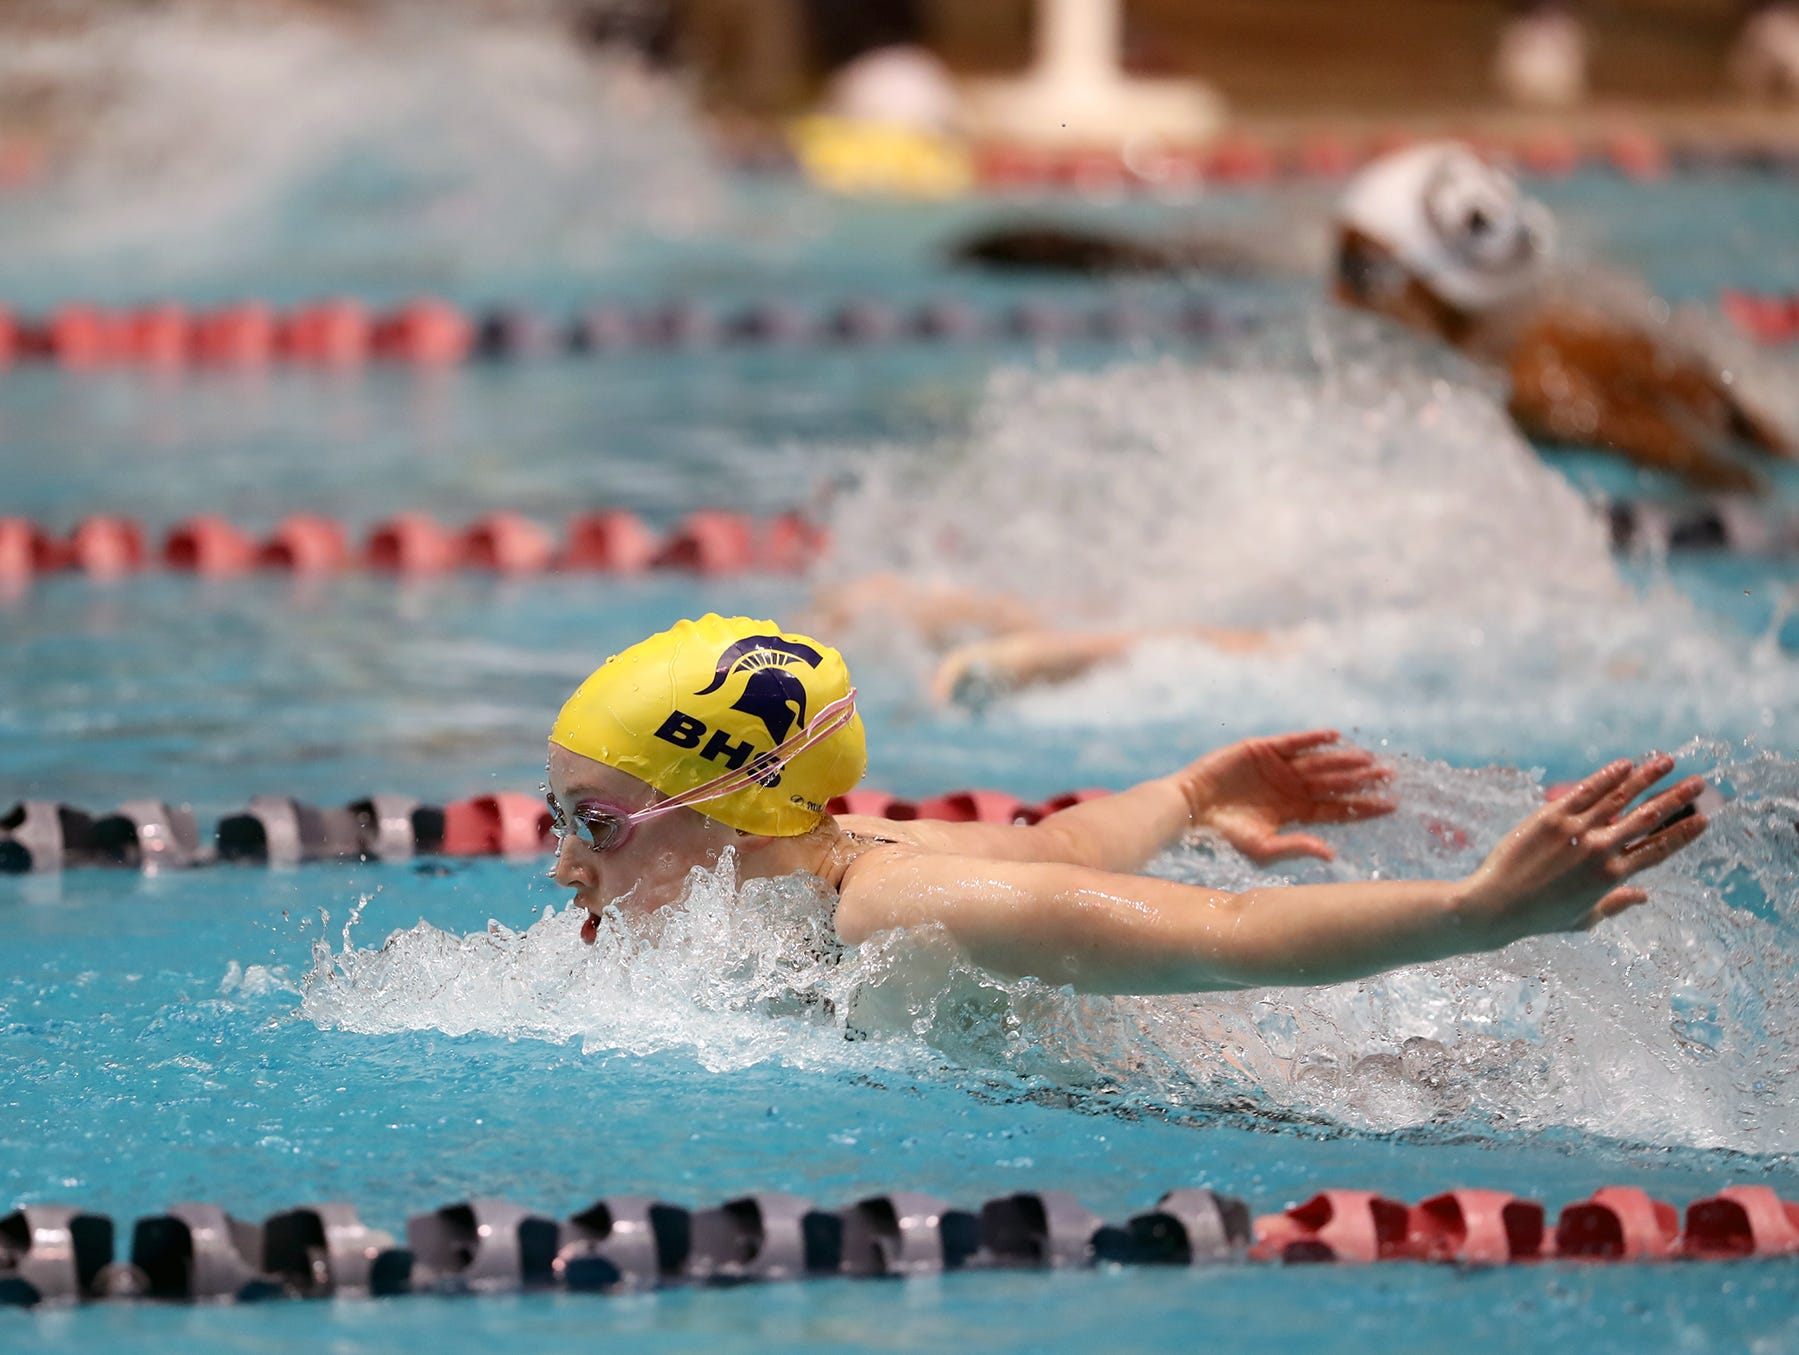 Bainbridge  swimmer Margaret Hayes competes in the 3A girls 200 IM medley at the Washington State Swim & Diving Championships at the King County Aquatic Center on Saturday, November, 10, 2018.She lead the whole race but was disqualified.